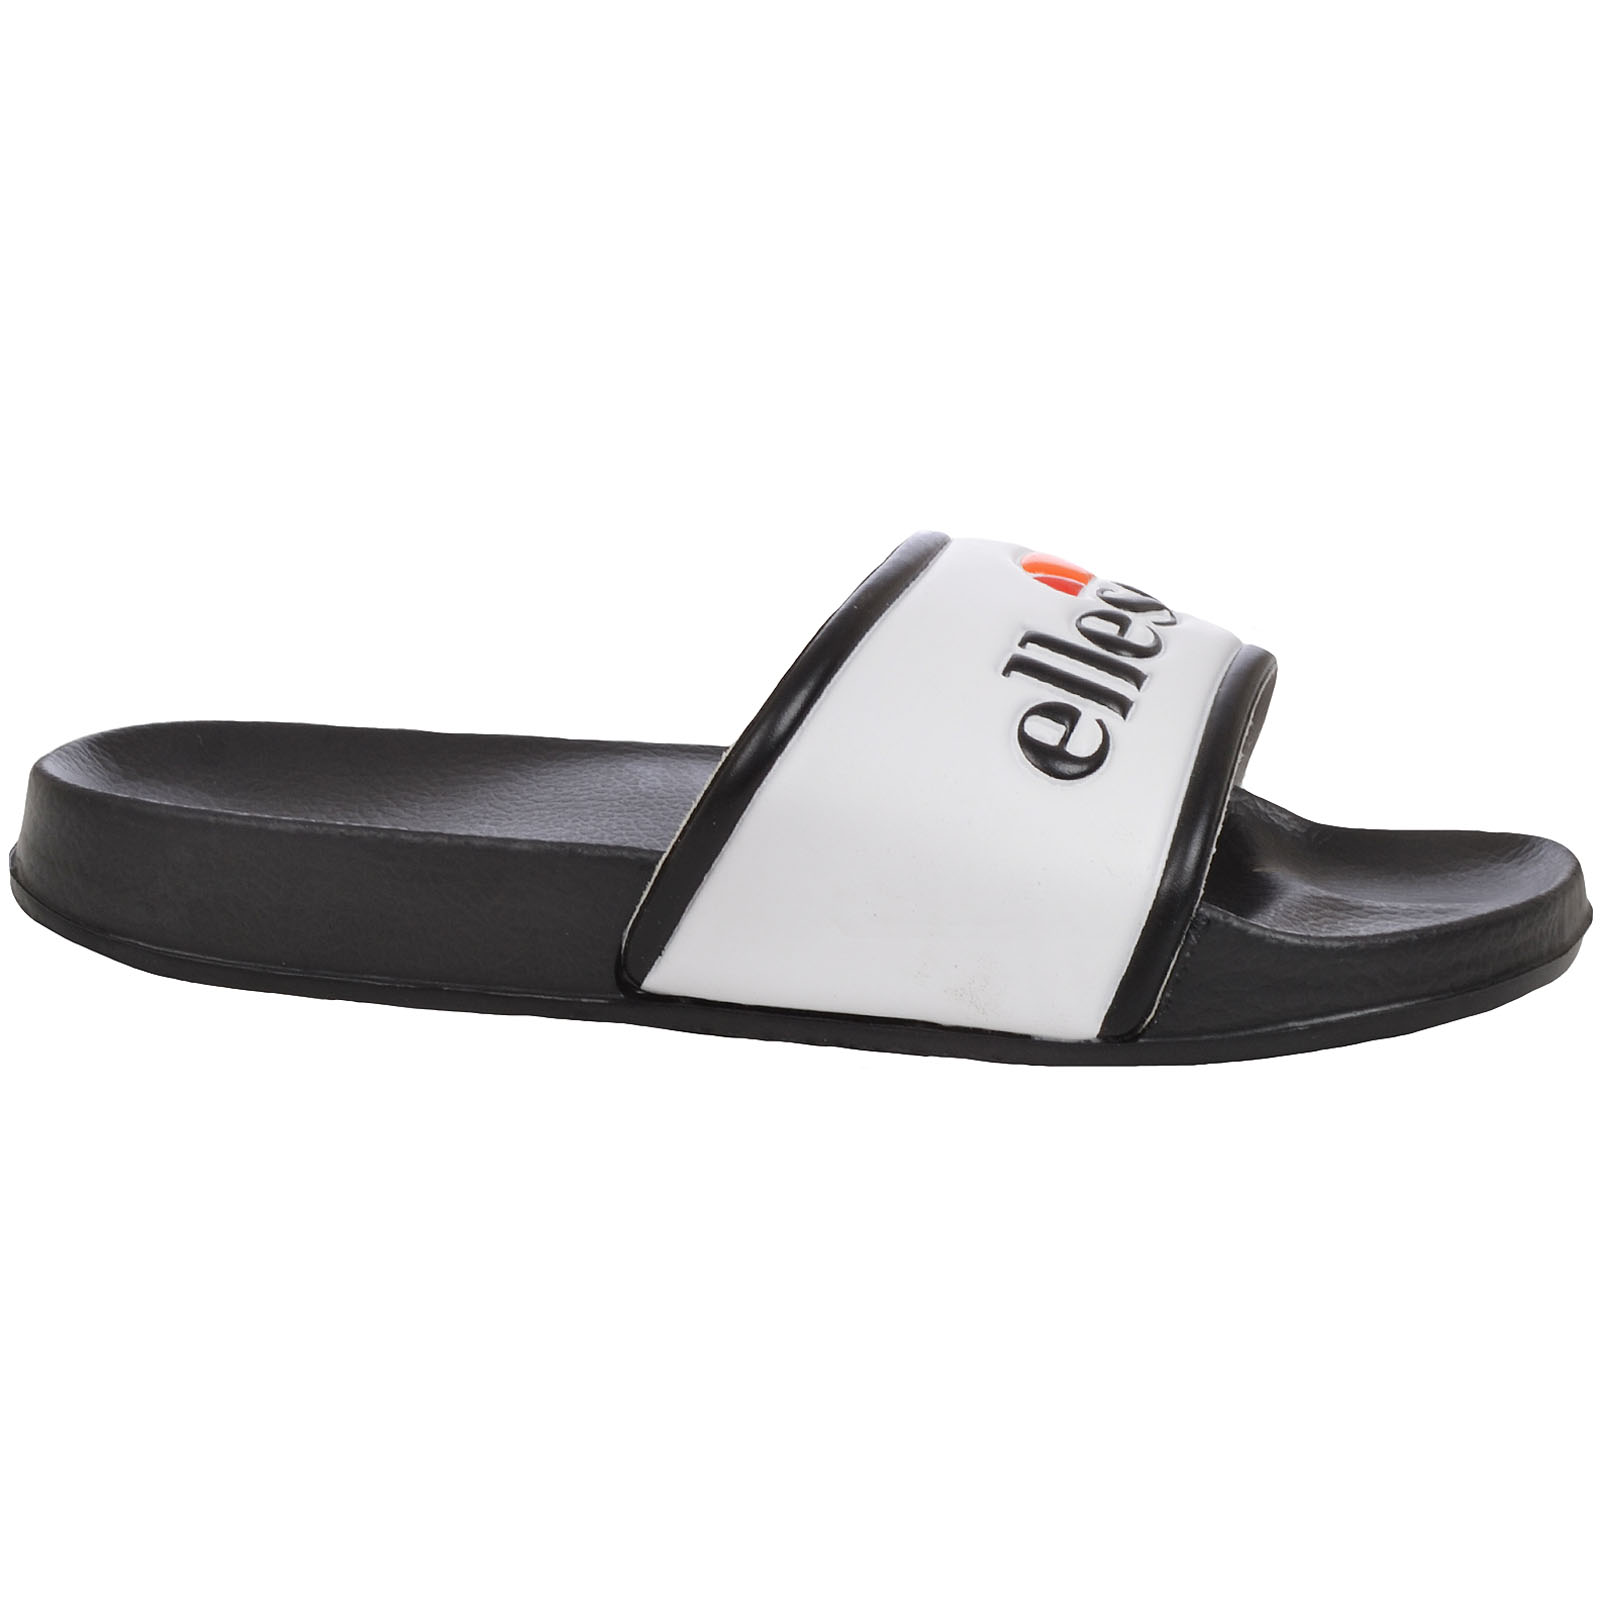 cda21dbb58b1 Ellesse Mens Julian Slides Flip Flops Pool Summer Slip On Sliders ...